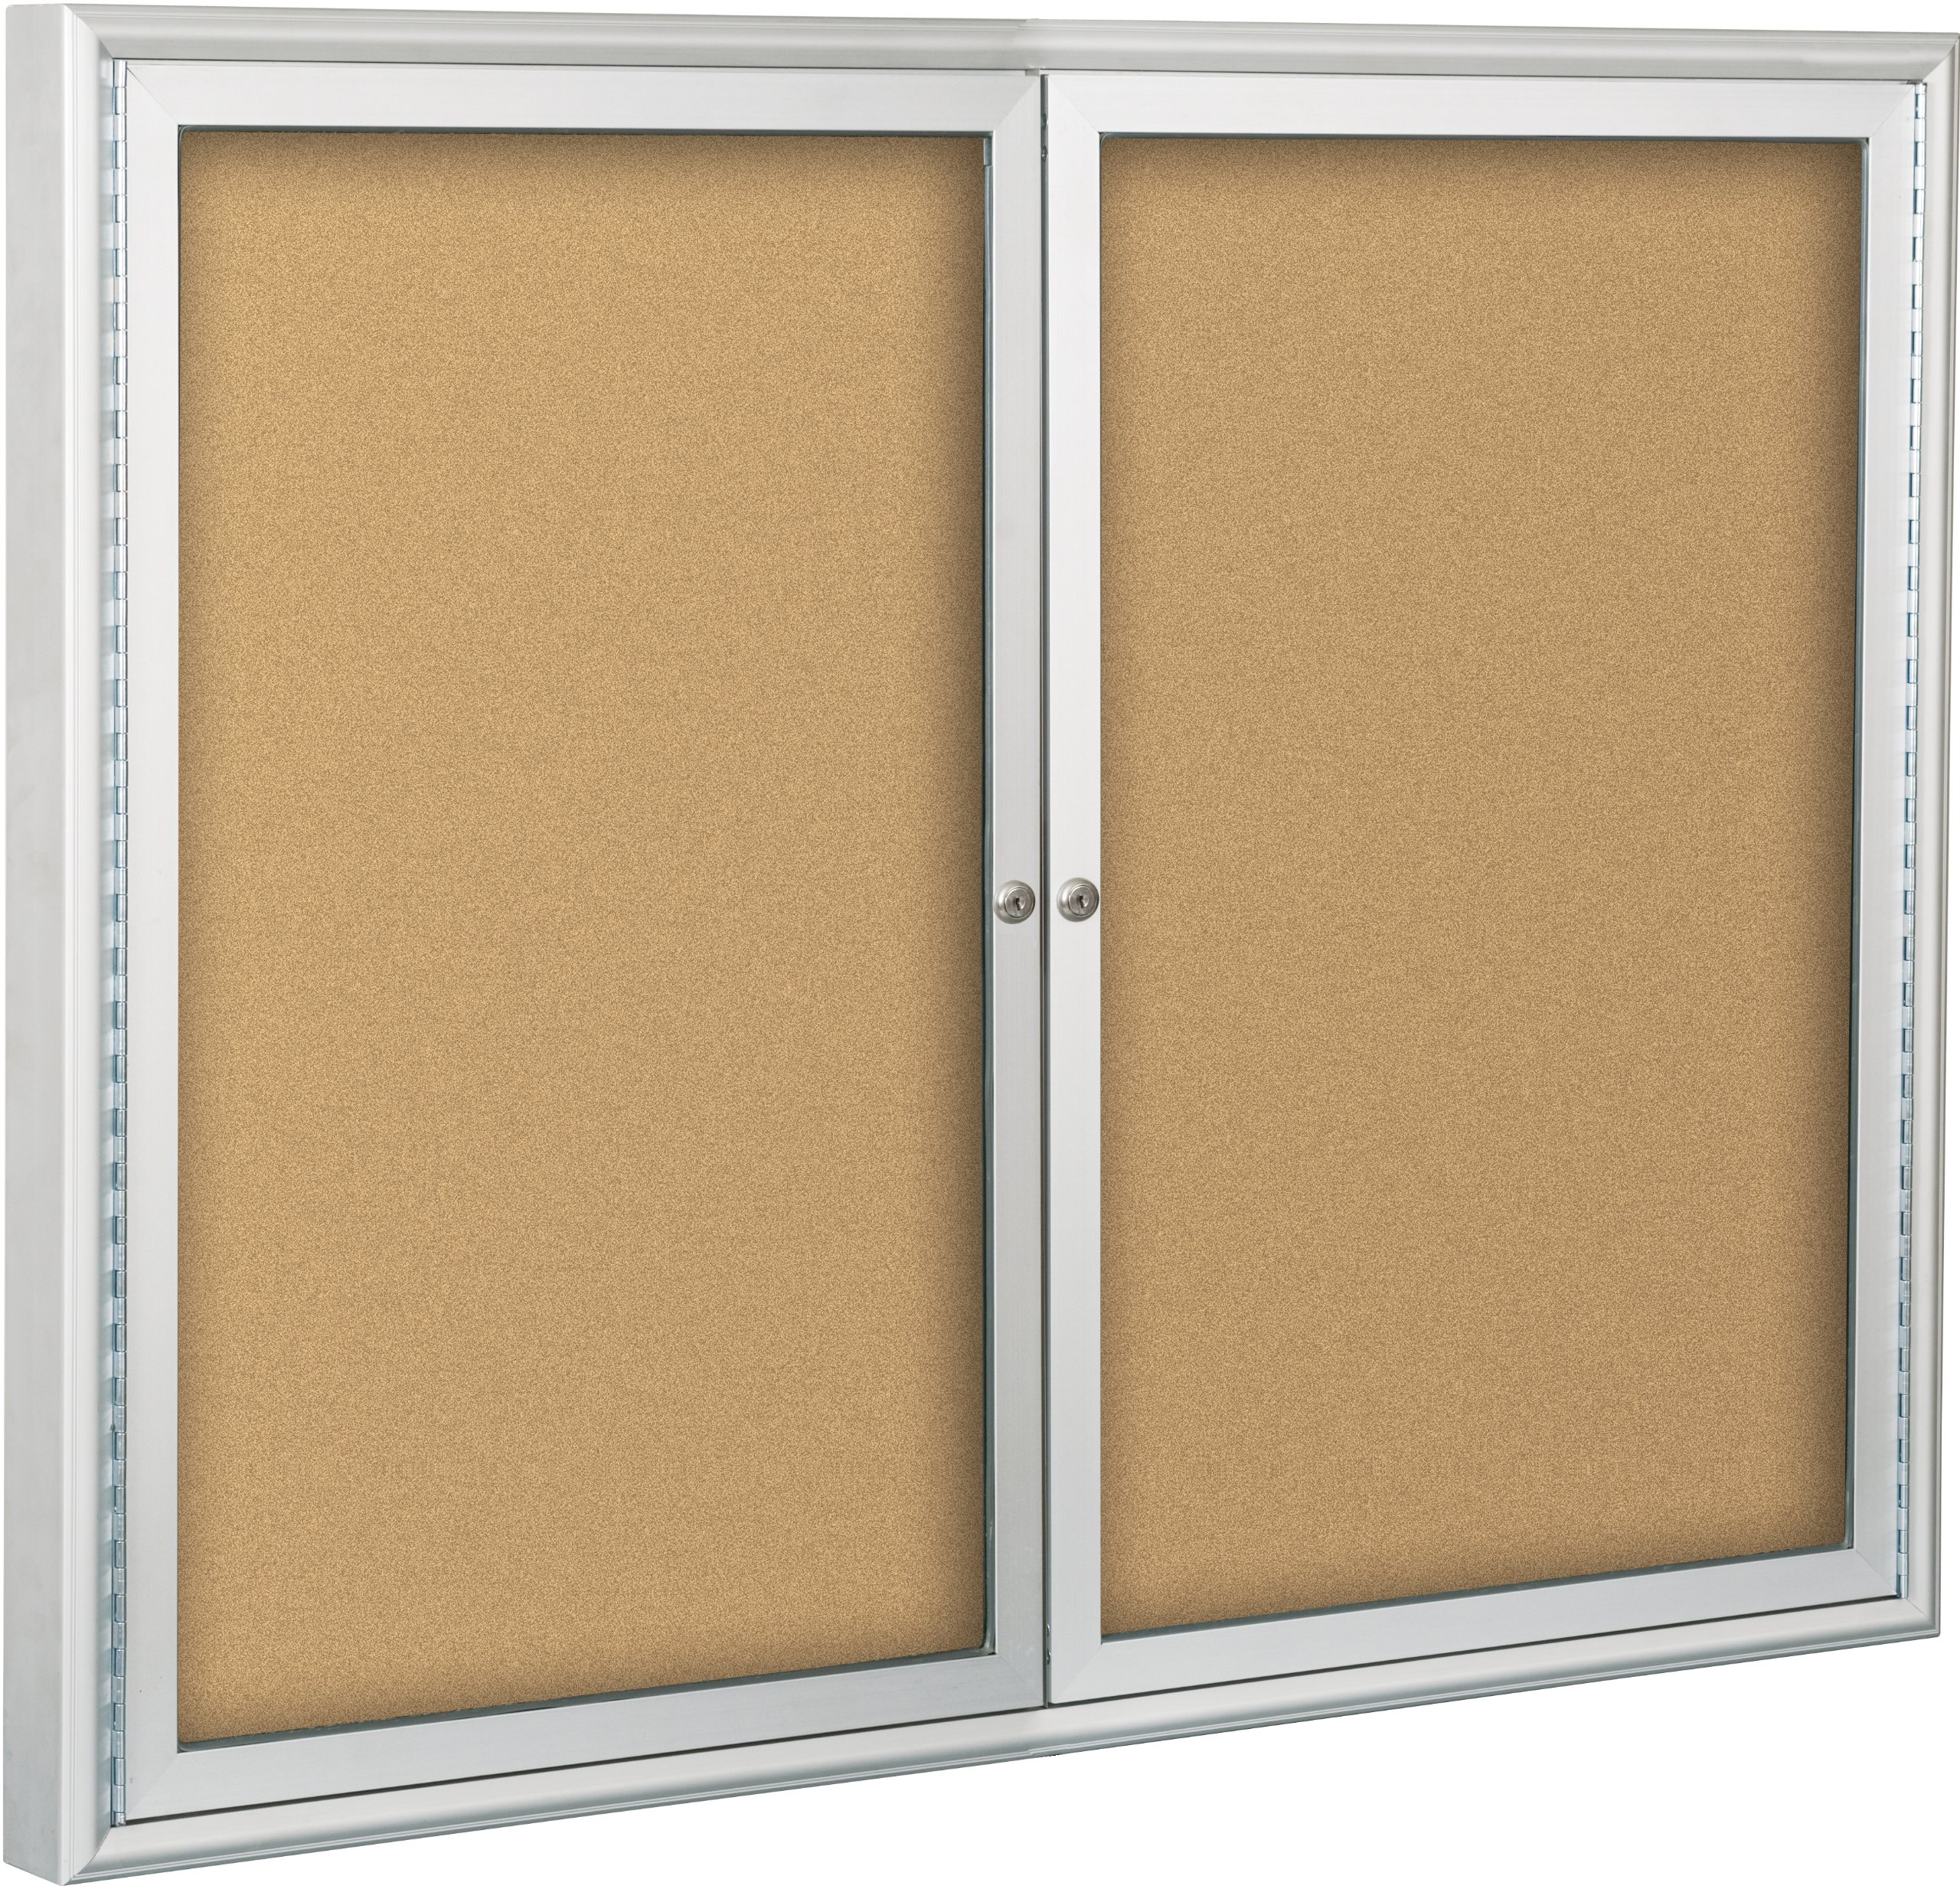 BestRite 3 x 5 Feet Indoor Enclosed Bulletin Board Cabinet, Natural Cork (94PSE-I-01) by MooreCo